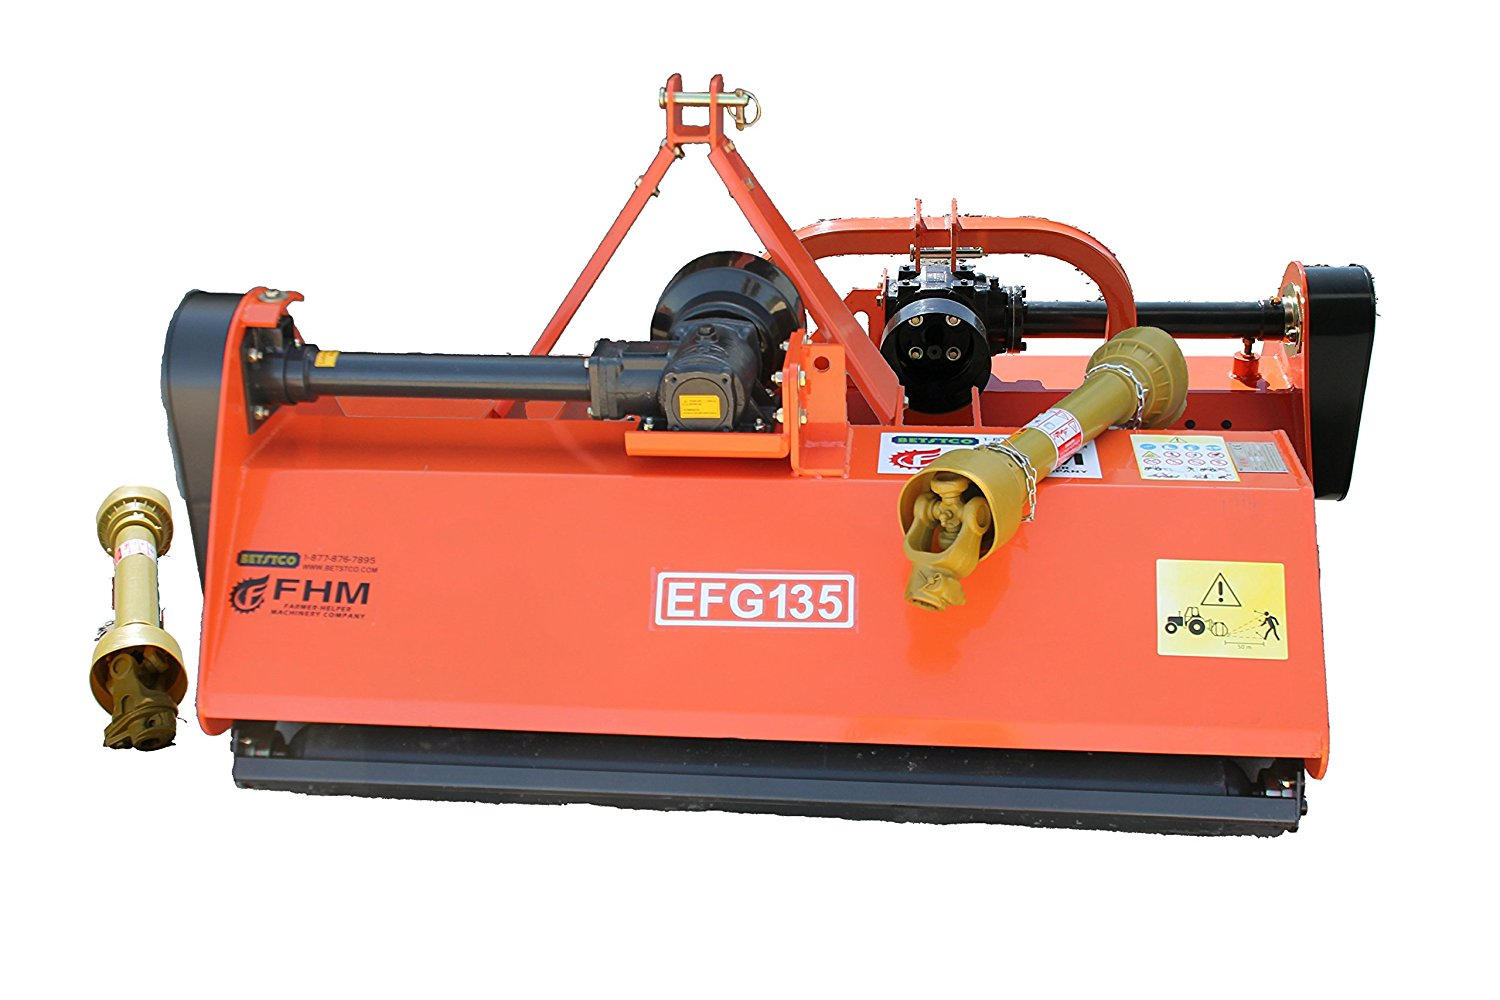 Farmer Helper 53″ Medium Duty Flail Mower, 3 point FH-EFG135 Requires a tractor. Not a standalone unit.